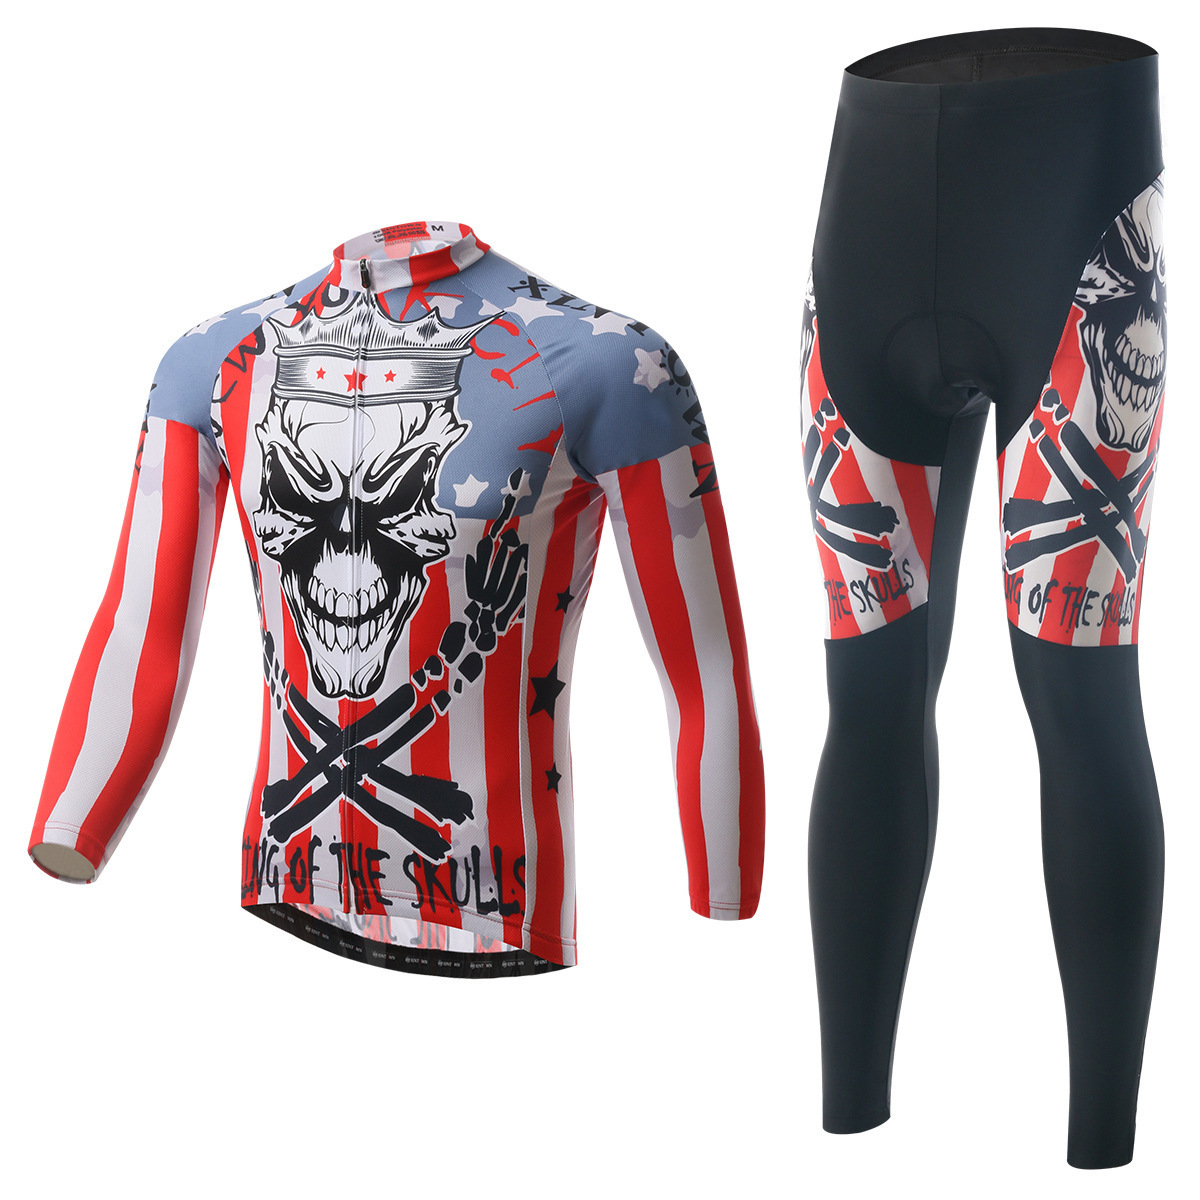 XINTOWN Cycling Jersey Men Long Sleeve Set Bike Cycle Clothing Spring Autumn Sets Invierno Bicycle Clothing Sport Wear цена